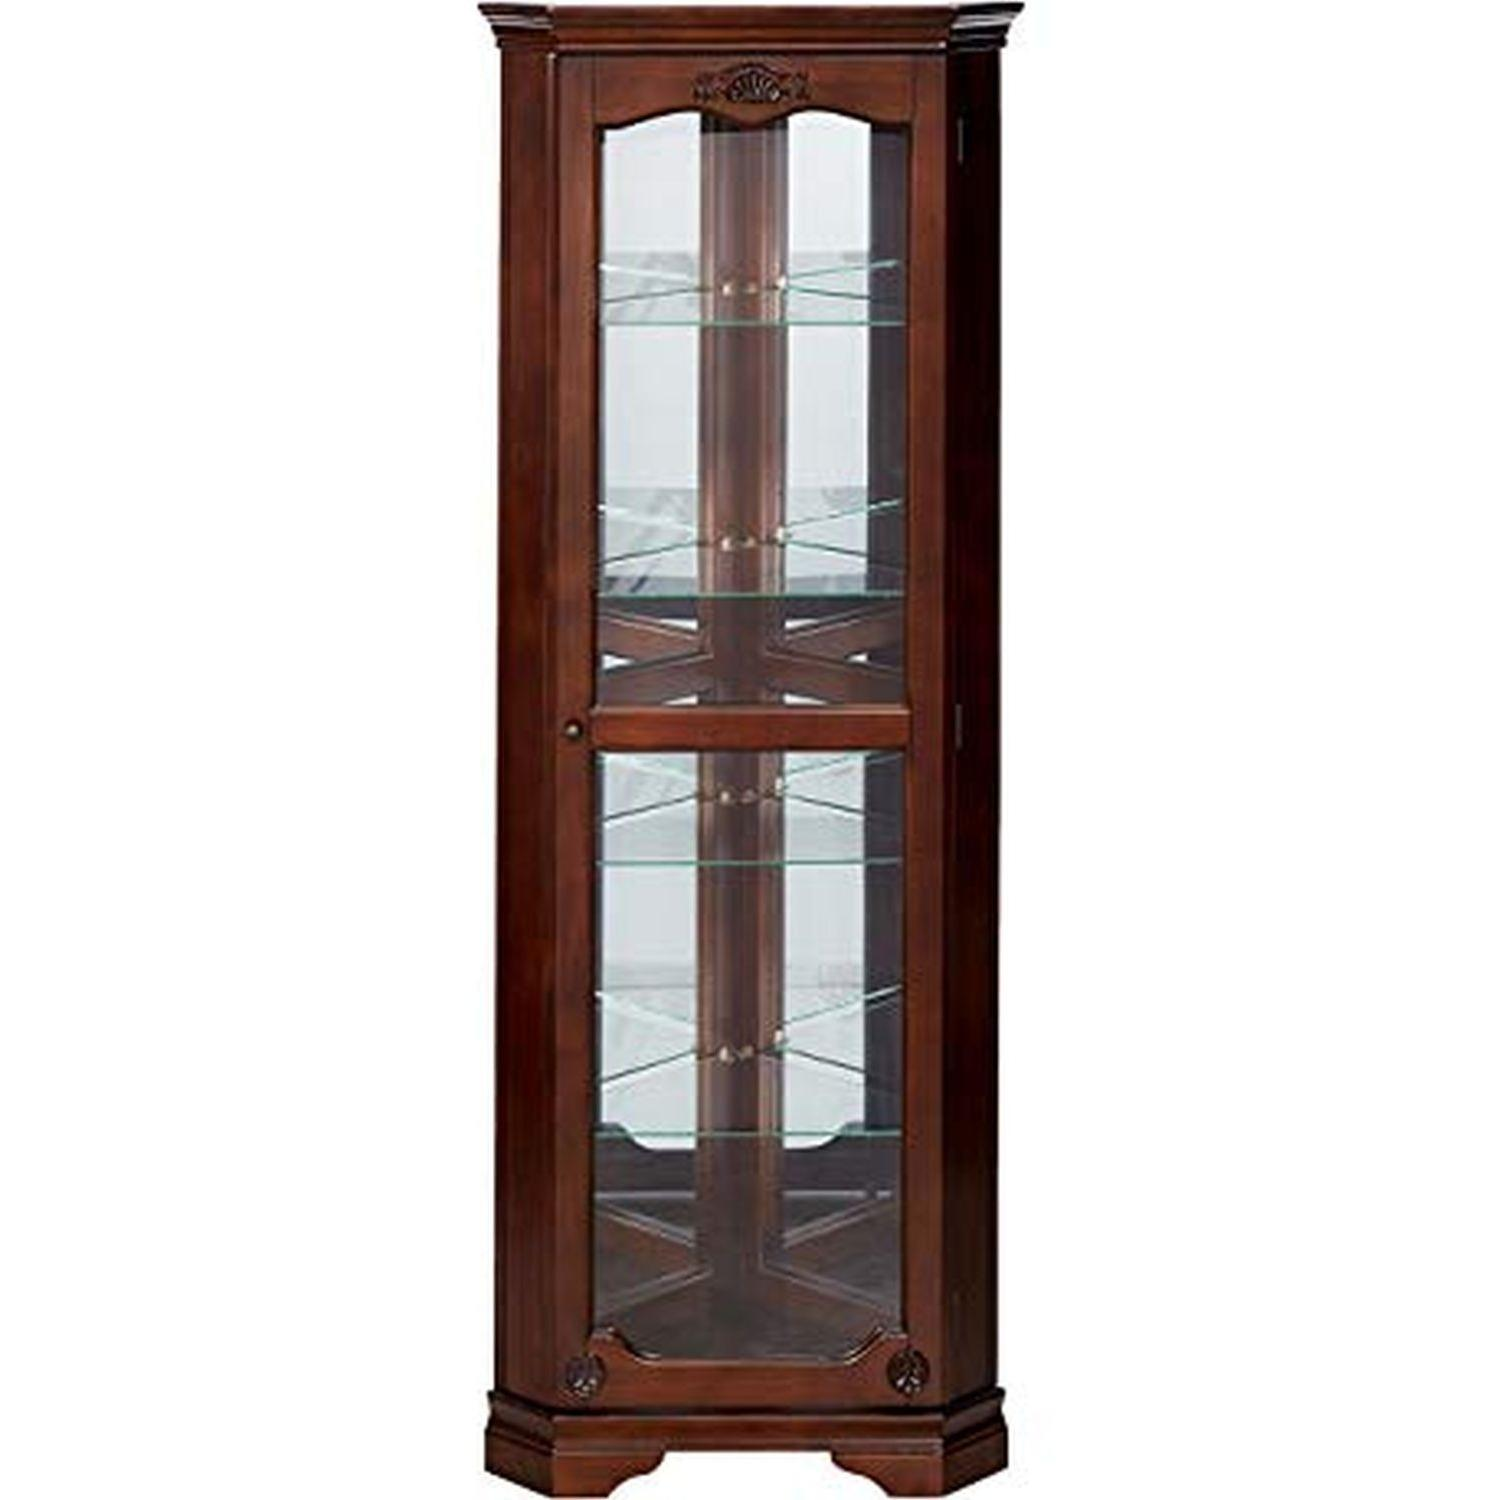 Classic Curio Cabinet in Golden Brown Finish - image-0